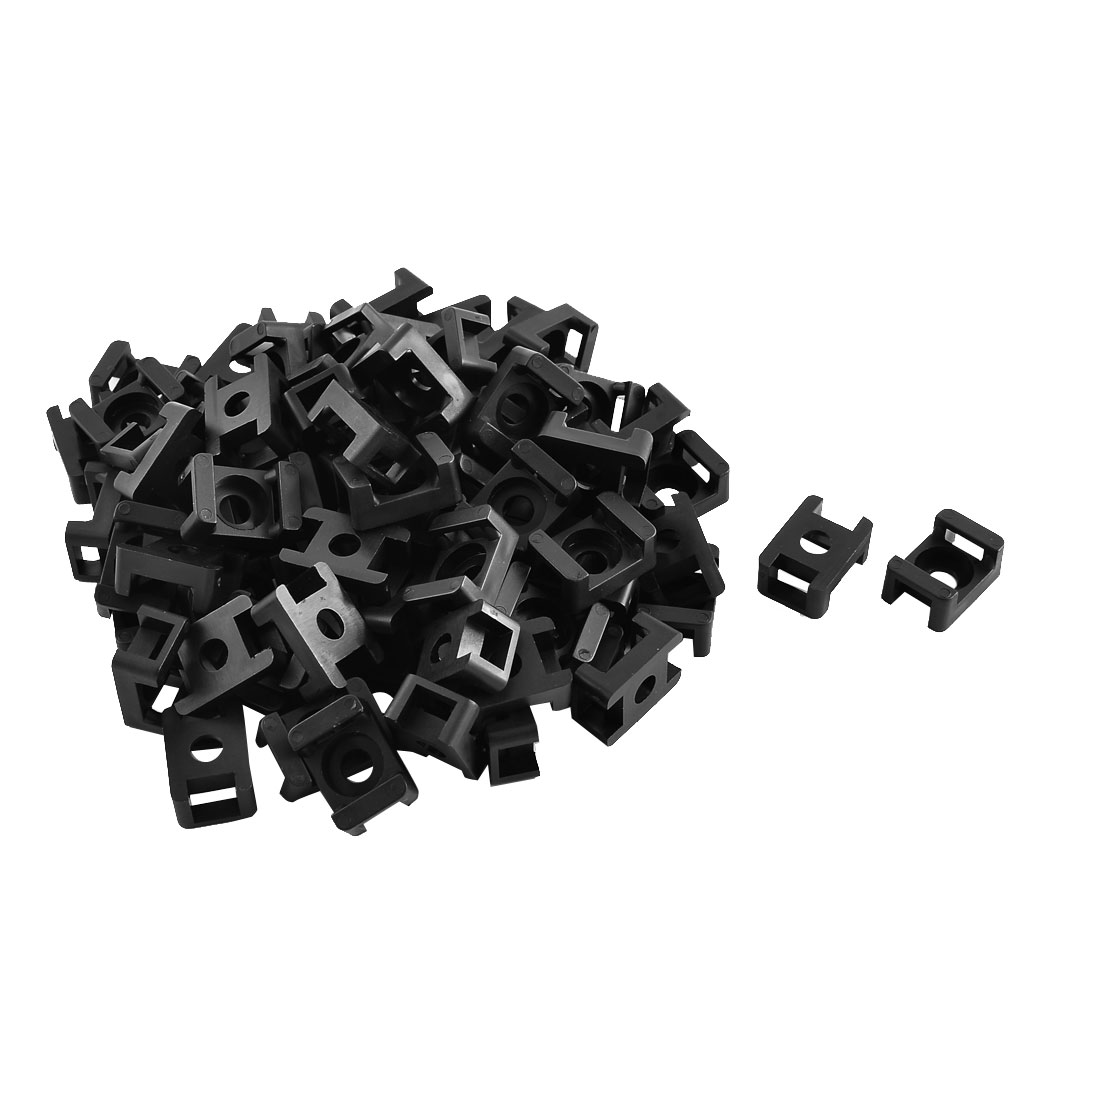 Saddle Type Cable Tie Base Mount Wire Holder Black 23 x 15 x 10mm 80pcs